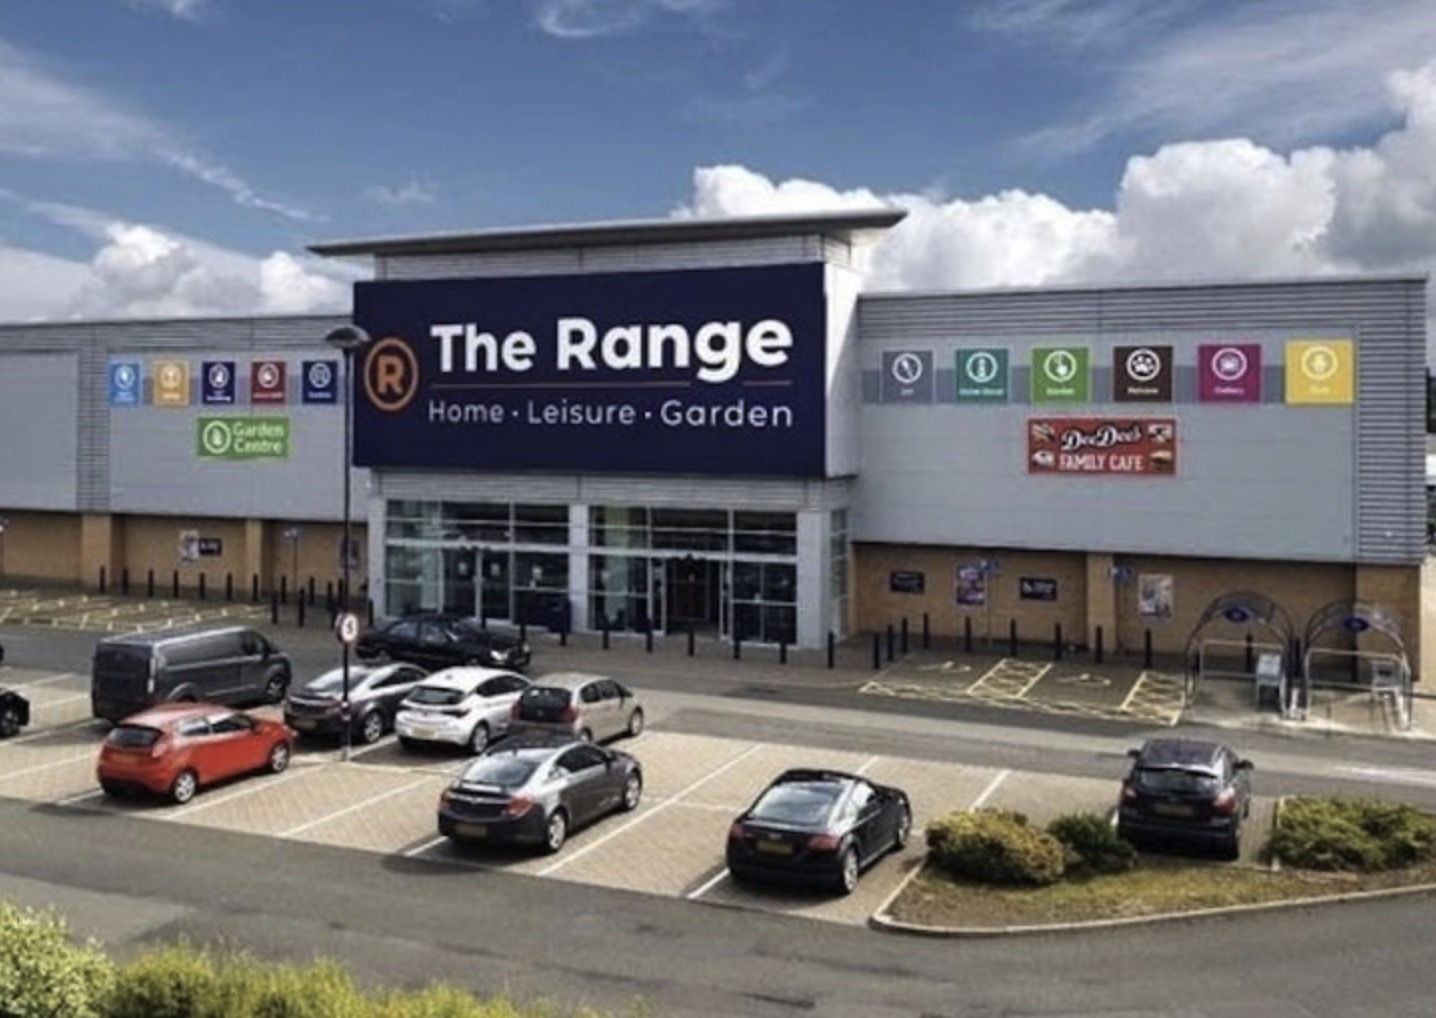 The Range to open new store in Alfreton